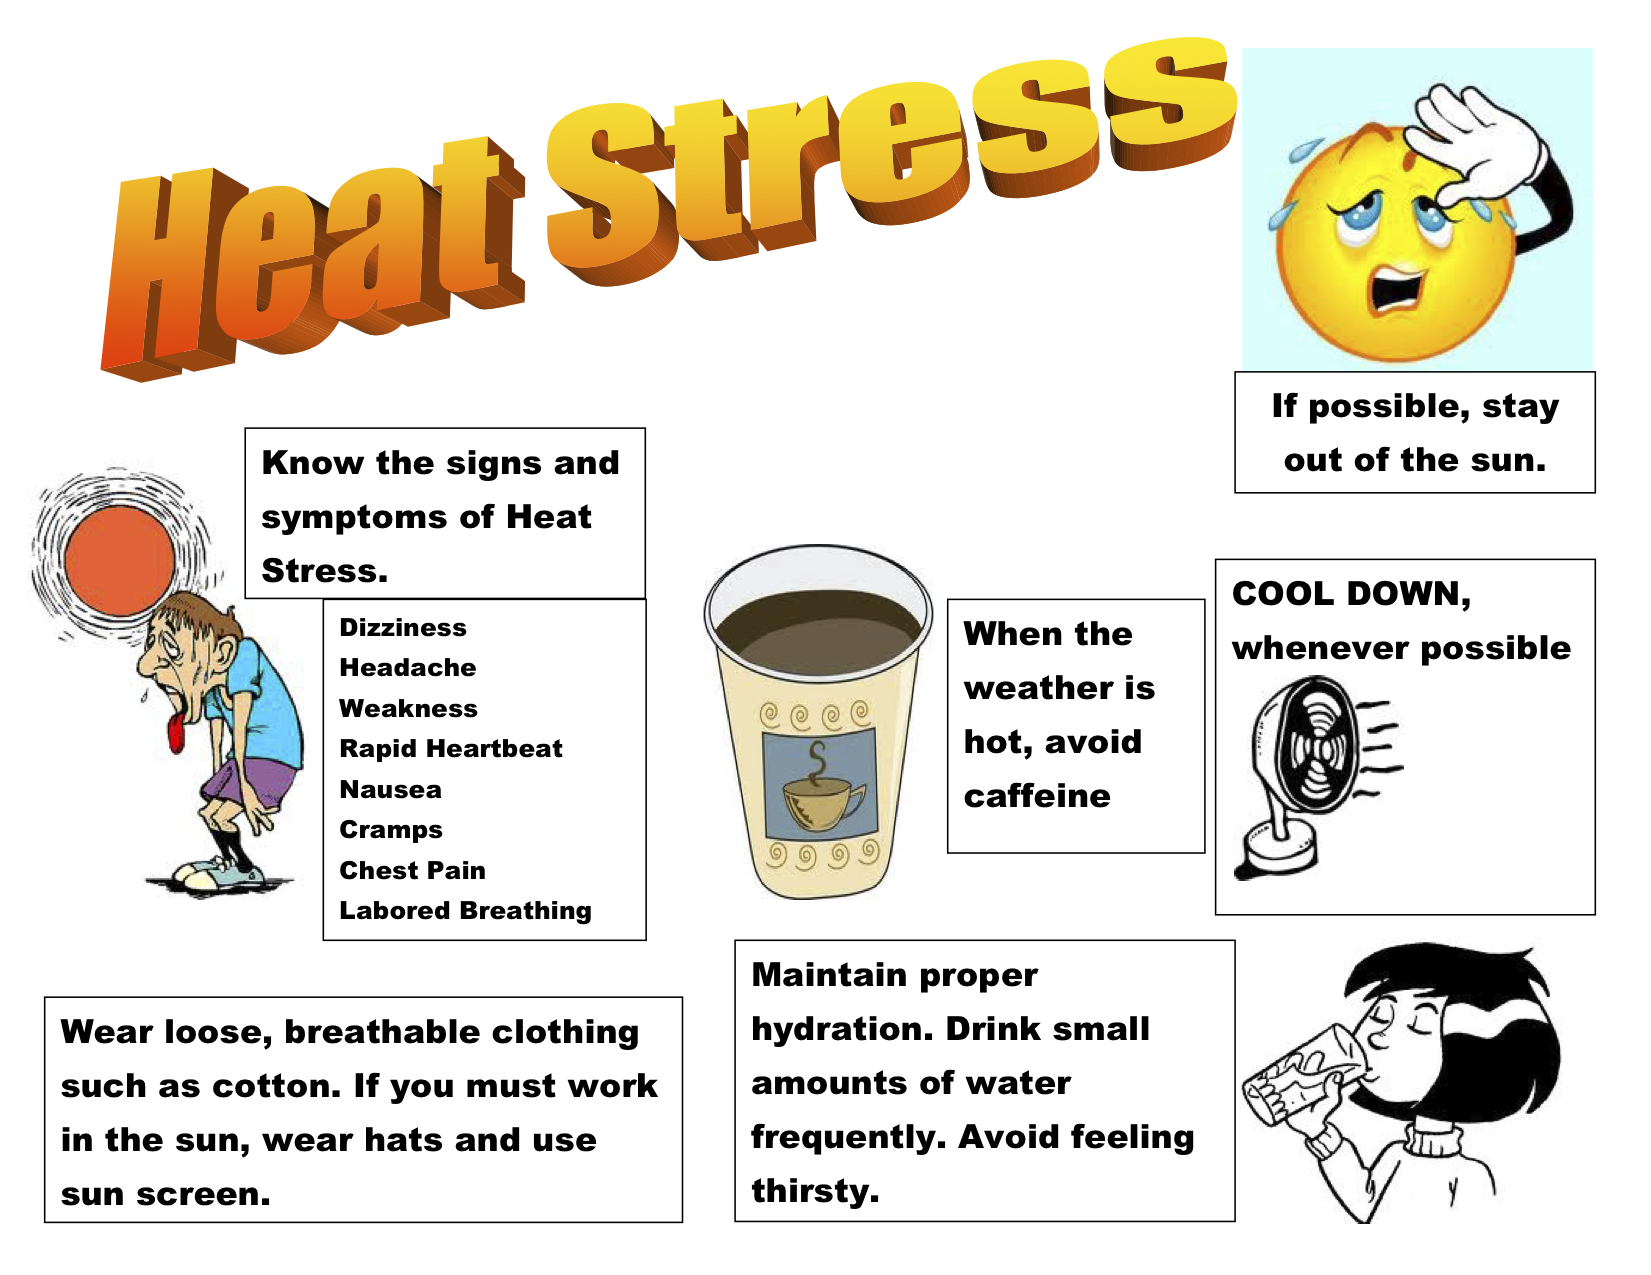 Heat clipart hydration Stress STRESS CapitalTristate 2012 of